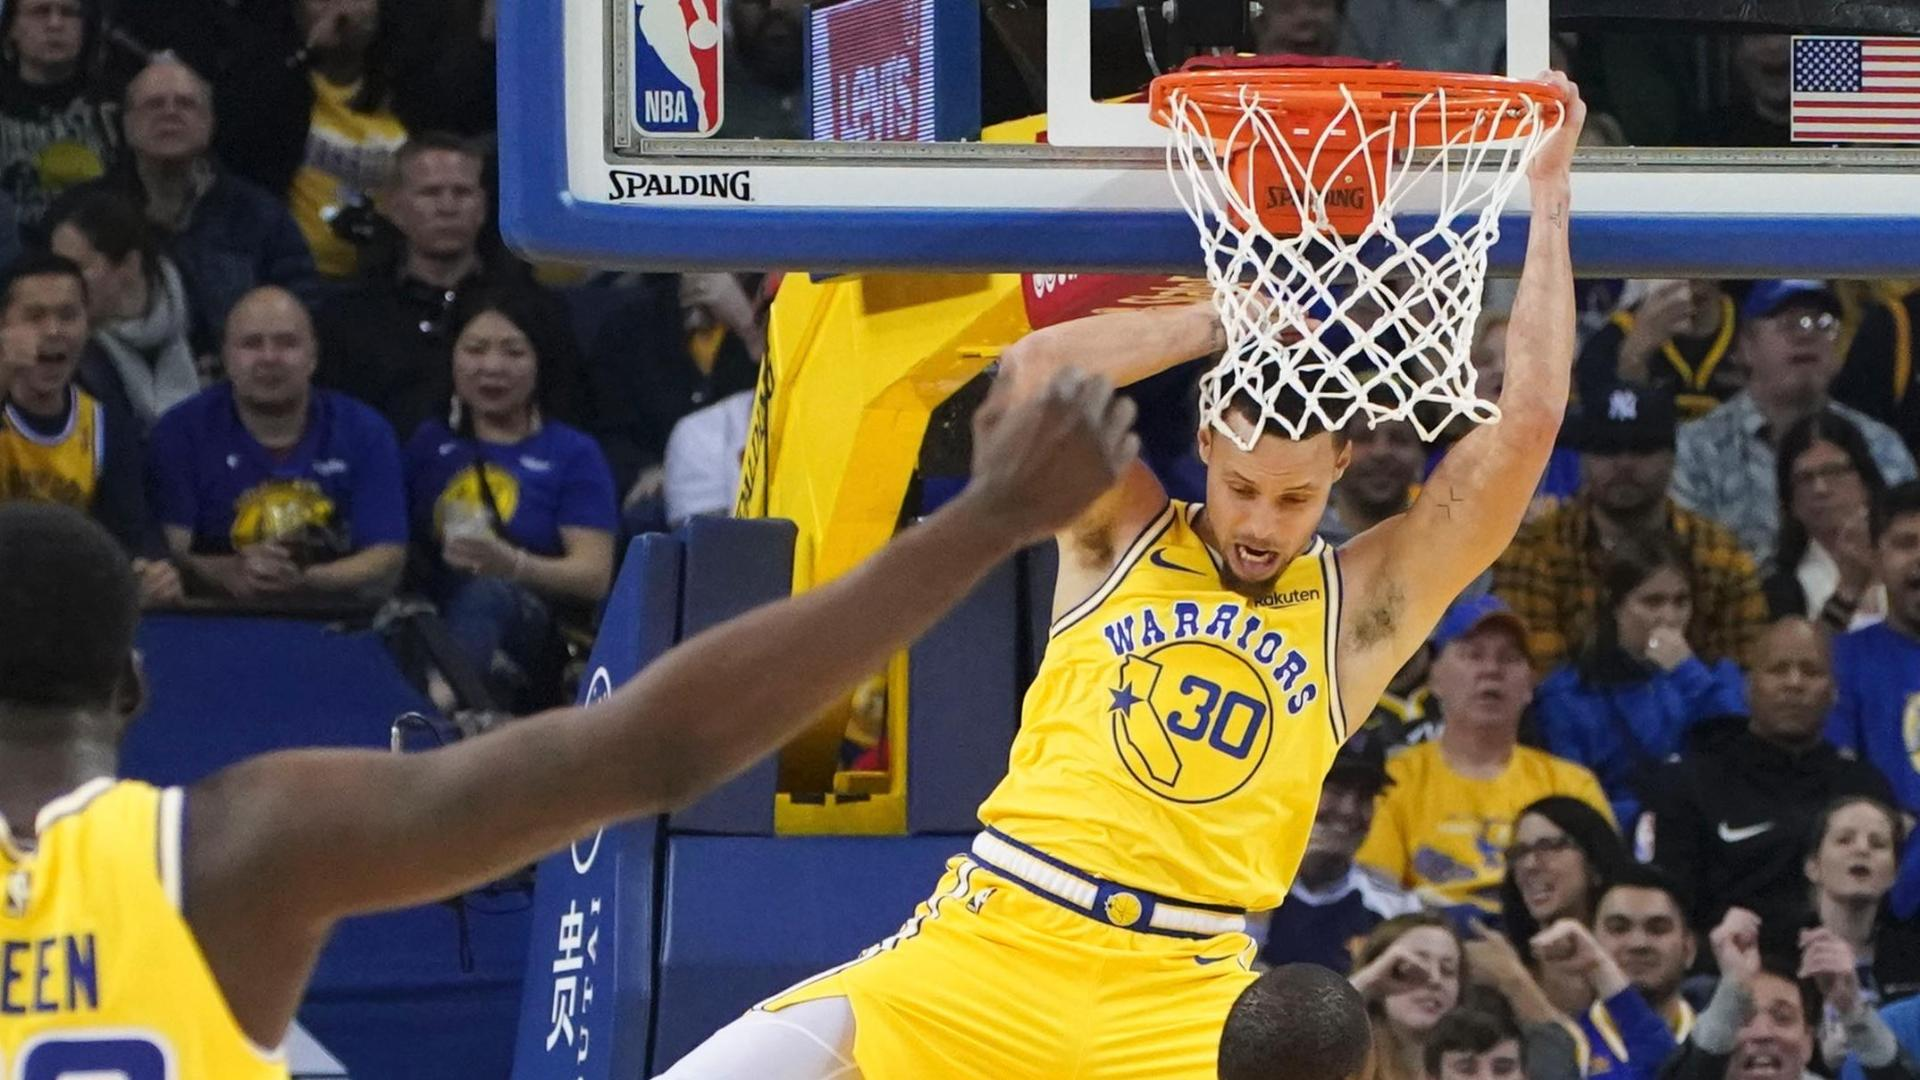 Curry elevates for rare slam